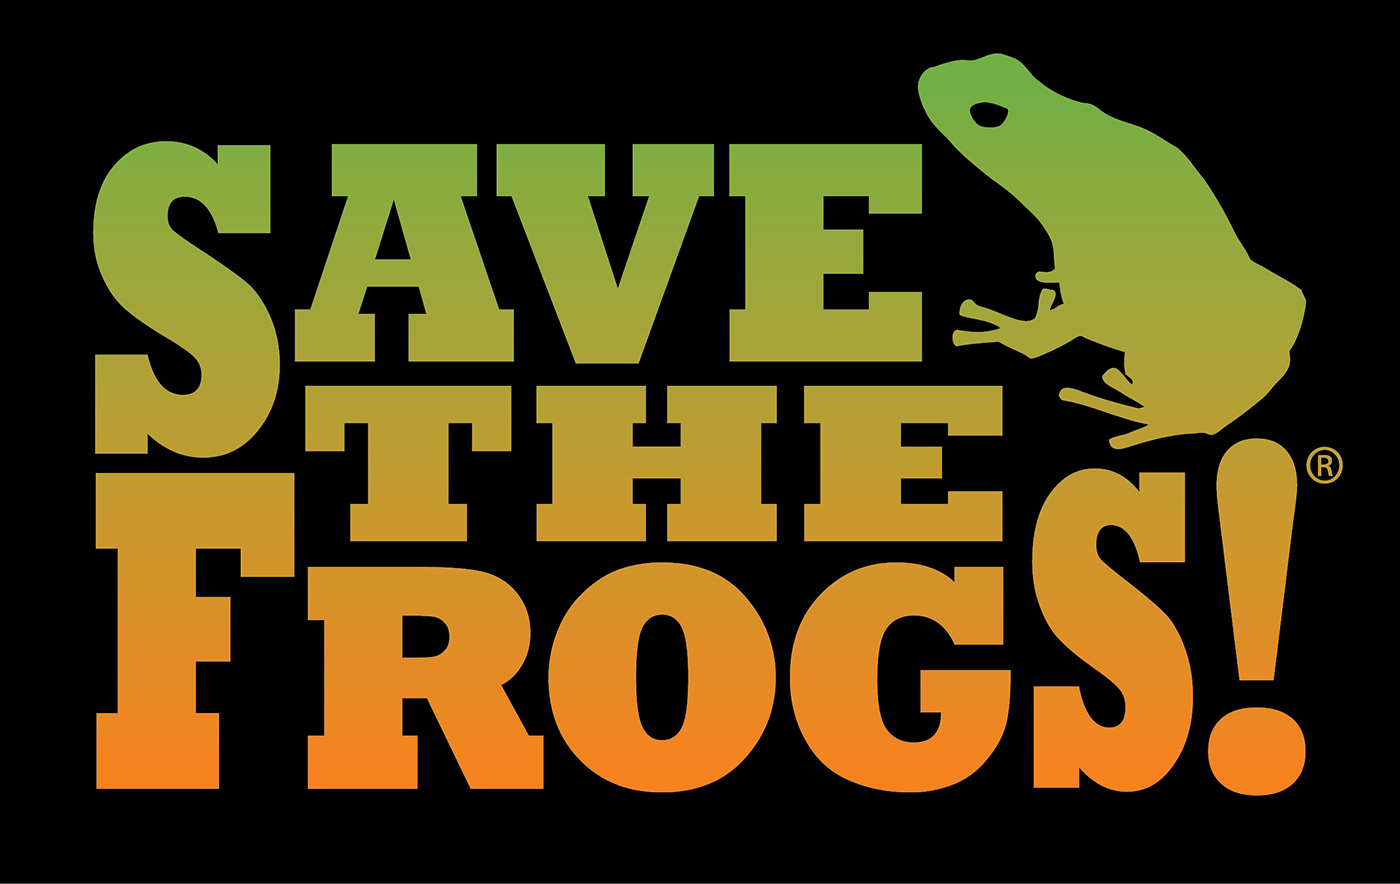 Save The Frogs Gradient Logo